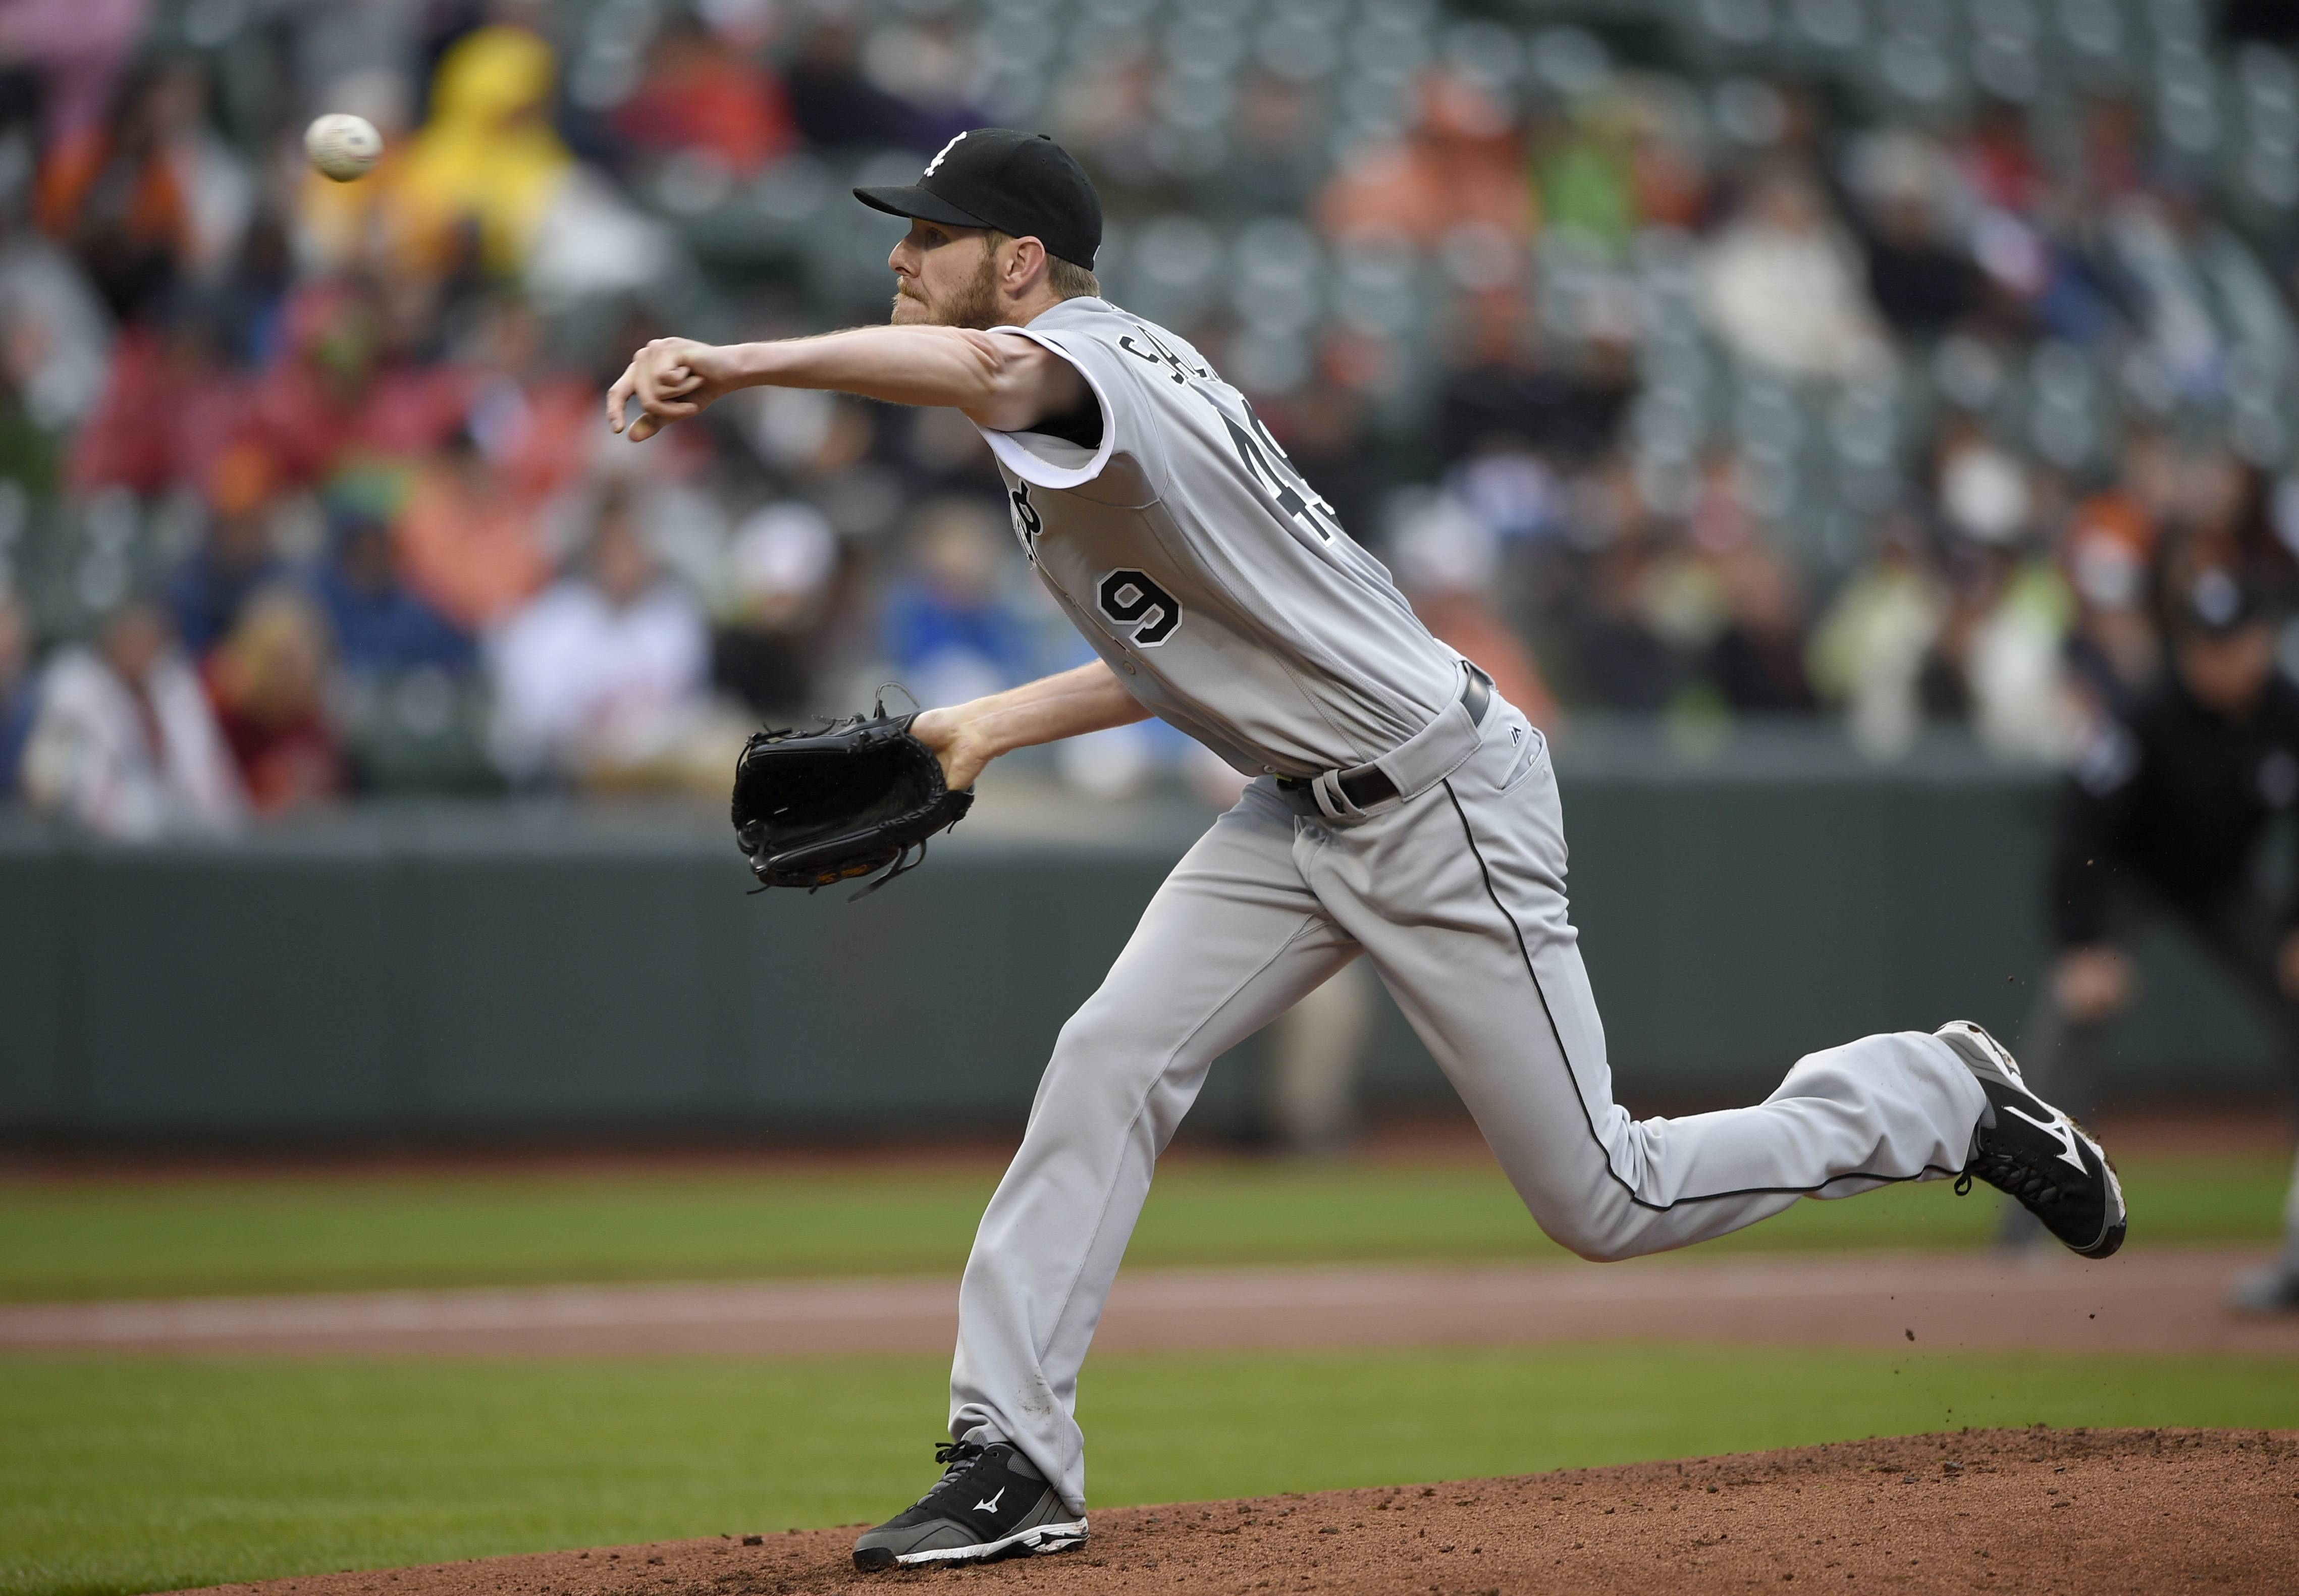 Chicago White Sox starting pitcher Chris Sale delivers a pitch during the first inning of a baseball game against the Baltimore Orioles, Sunday, May 1, 2016, in Baltimore.